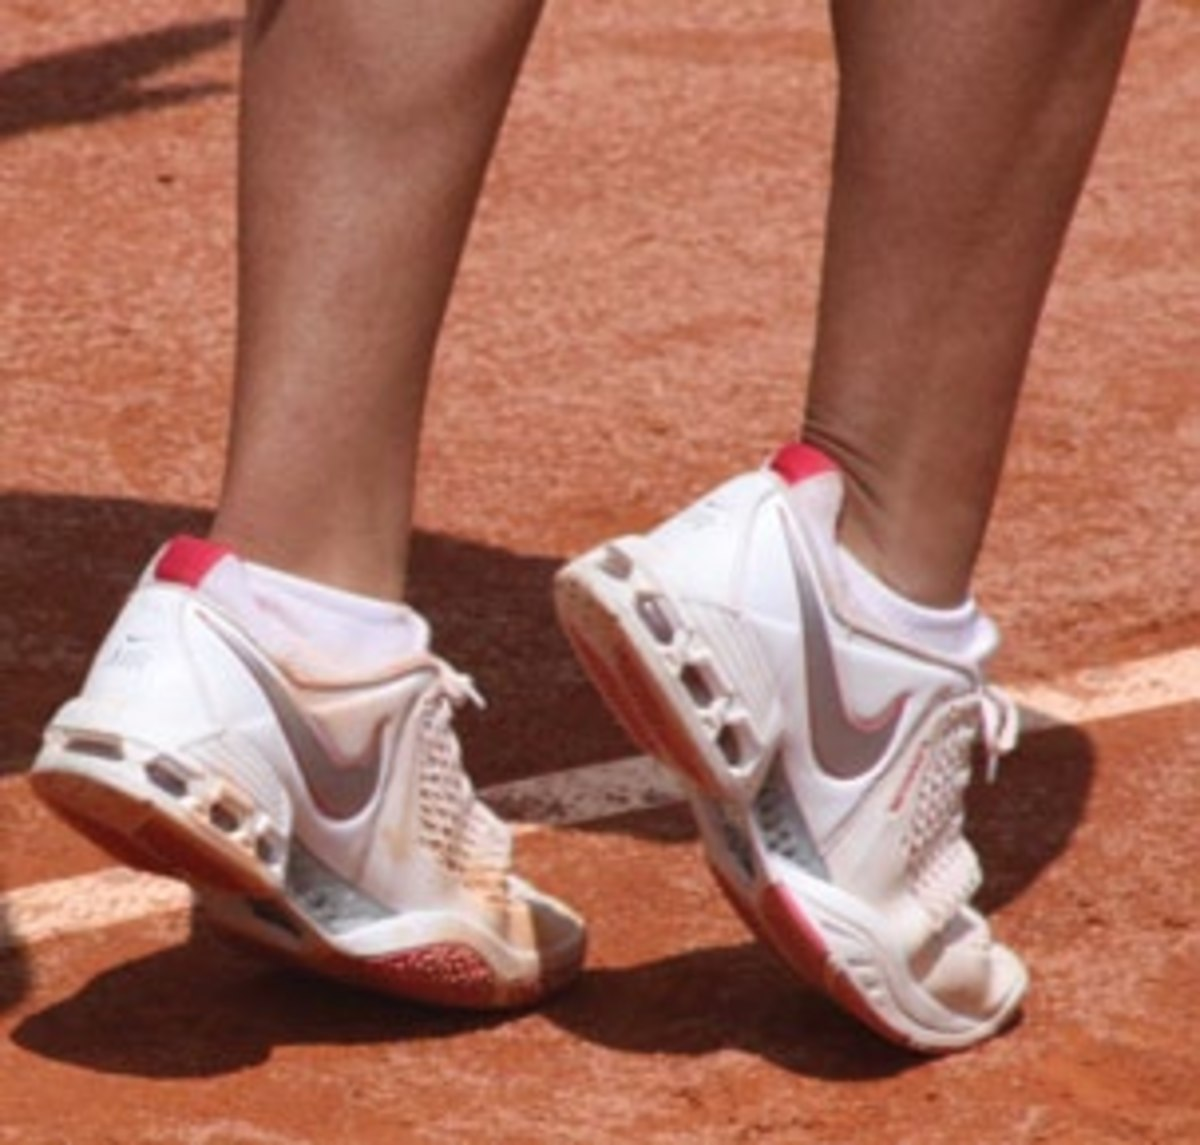 Save those tennis shoes!